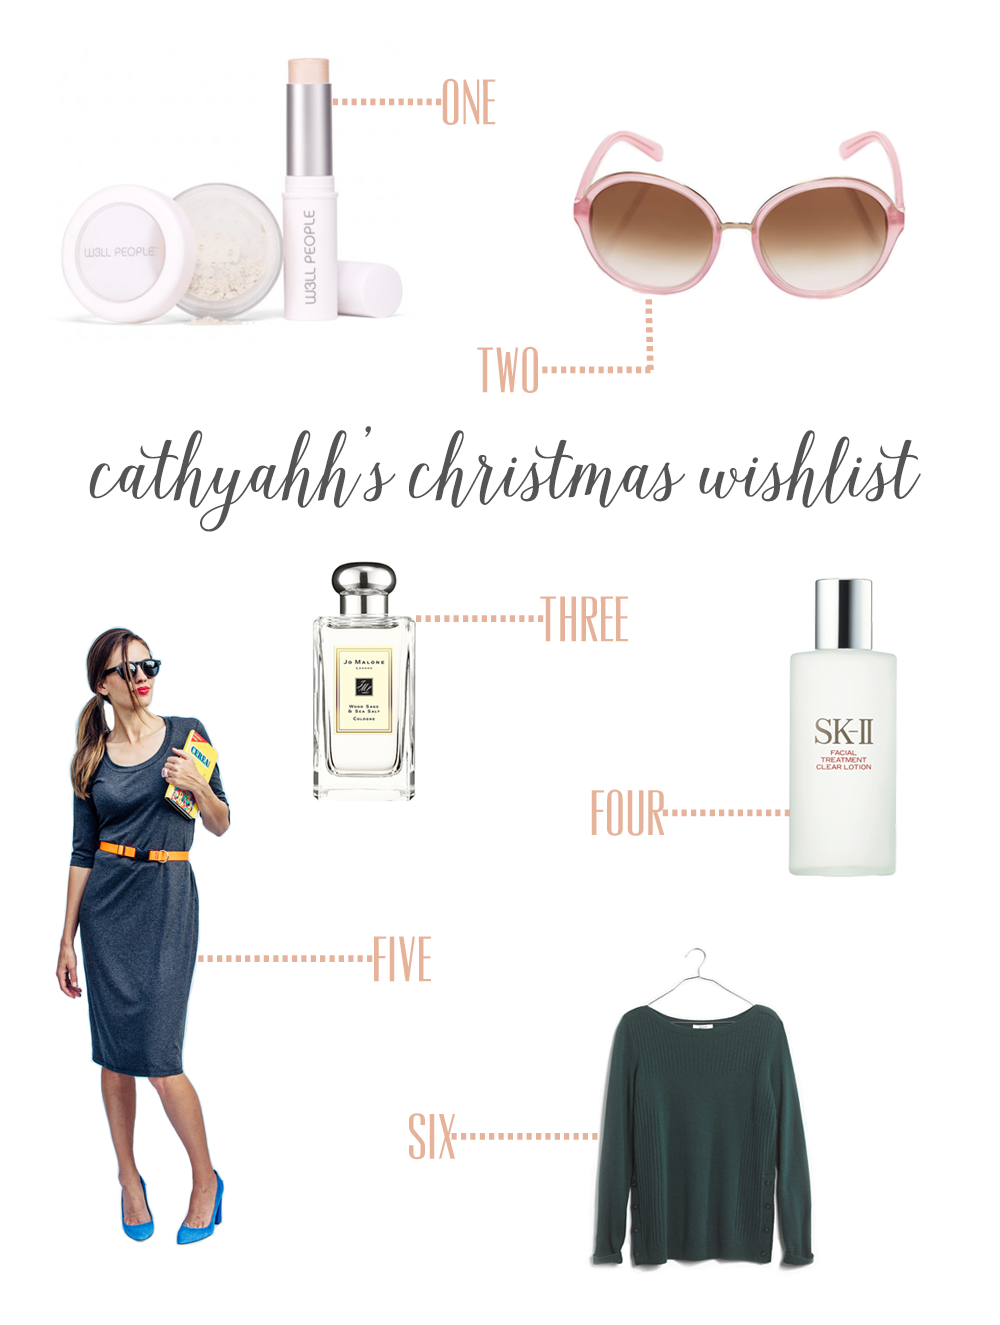 cathyahh christmas 2014 wishlist w3ll people kate spade jo malone sk-ii madewell sonnet james